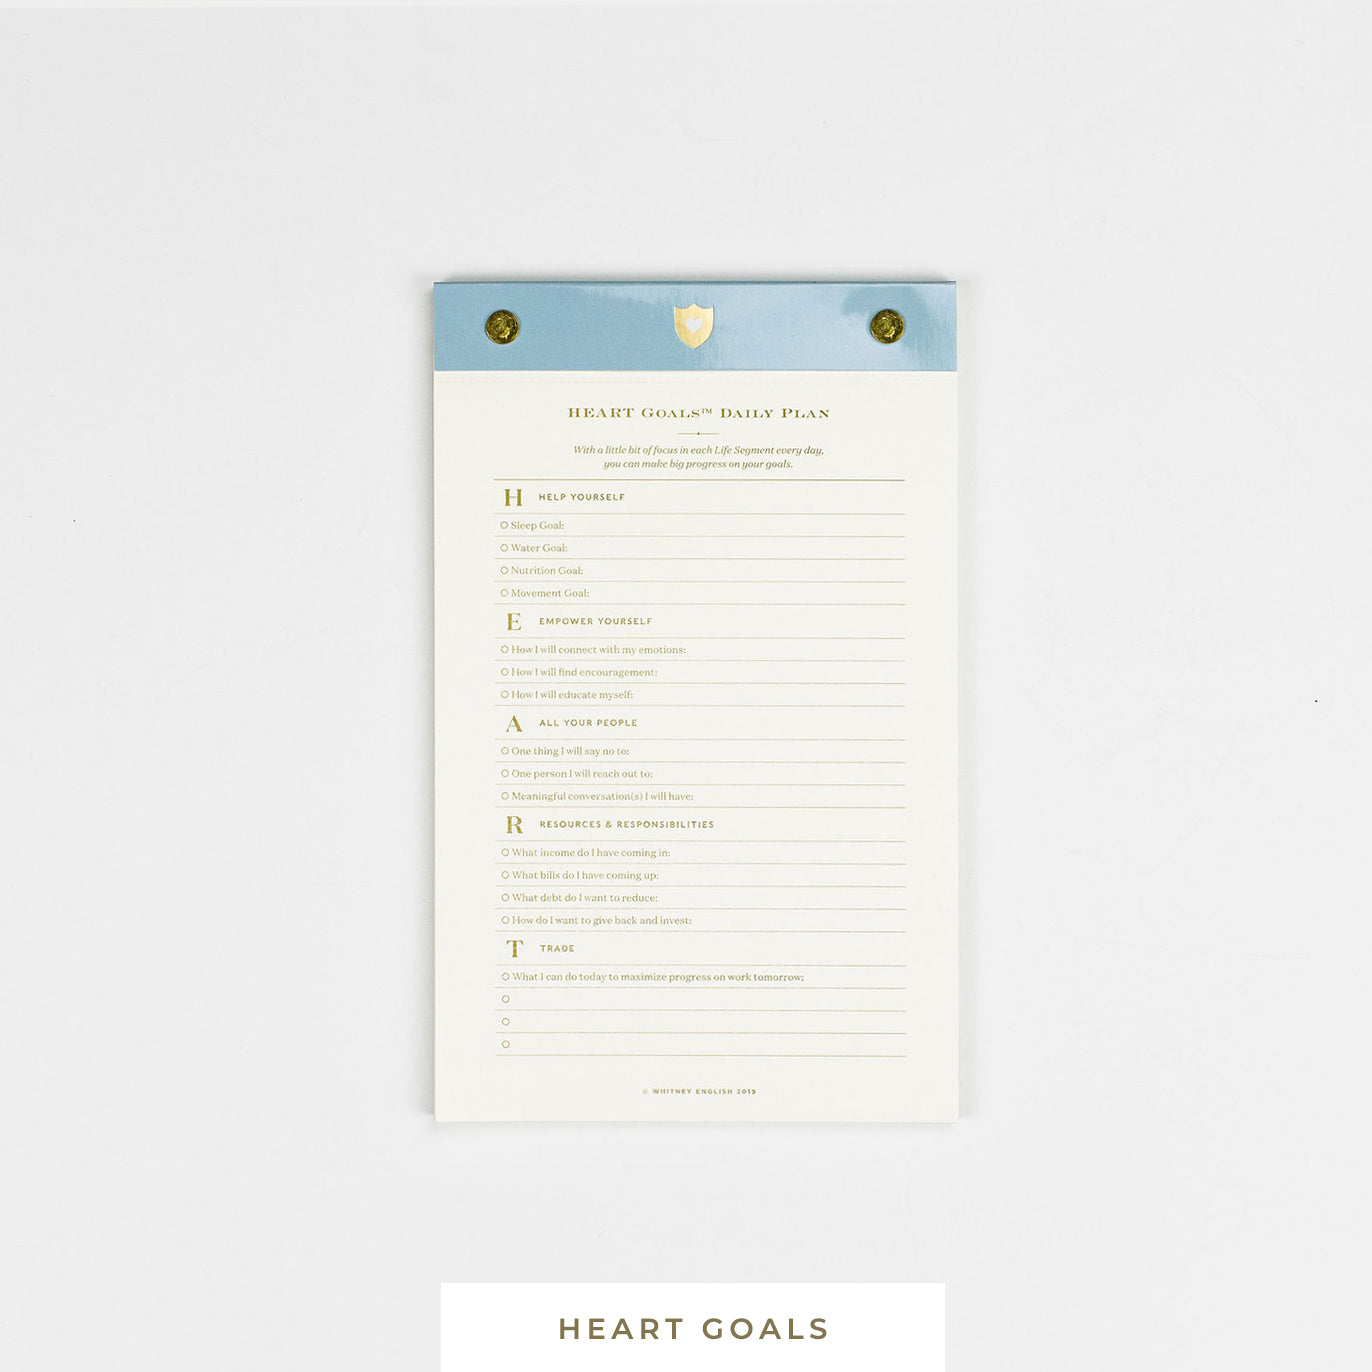 Notepad || HEART Goals Daily Plan